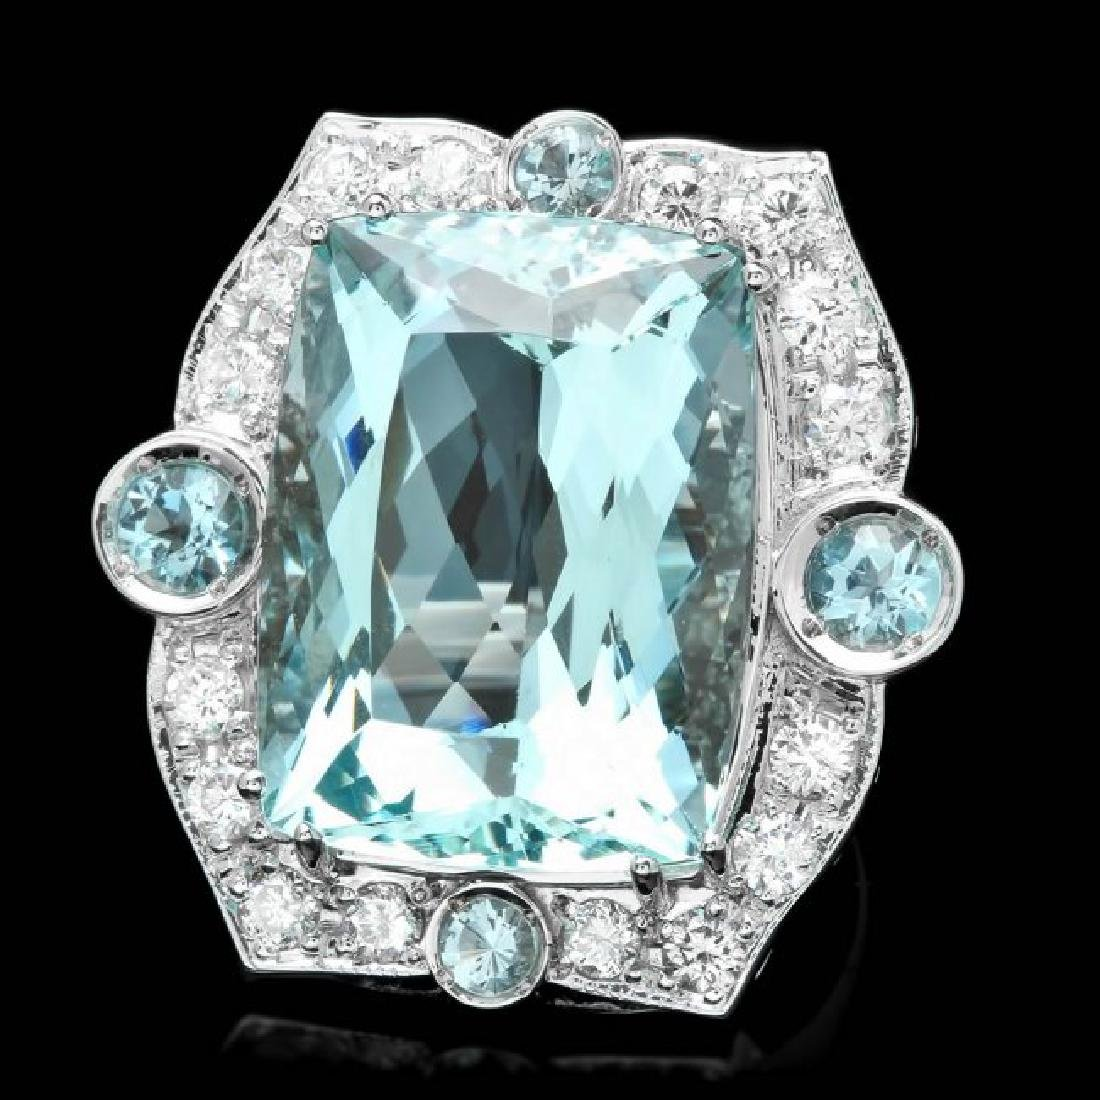 14k Gold 22ct Aquamarine 1.35ct Diamond Ring